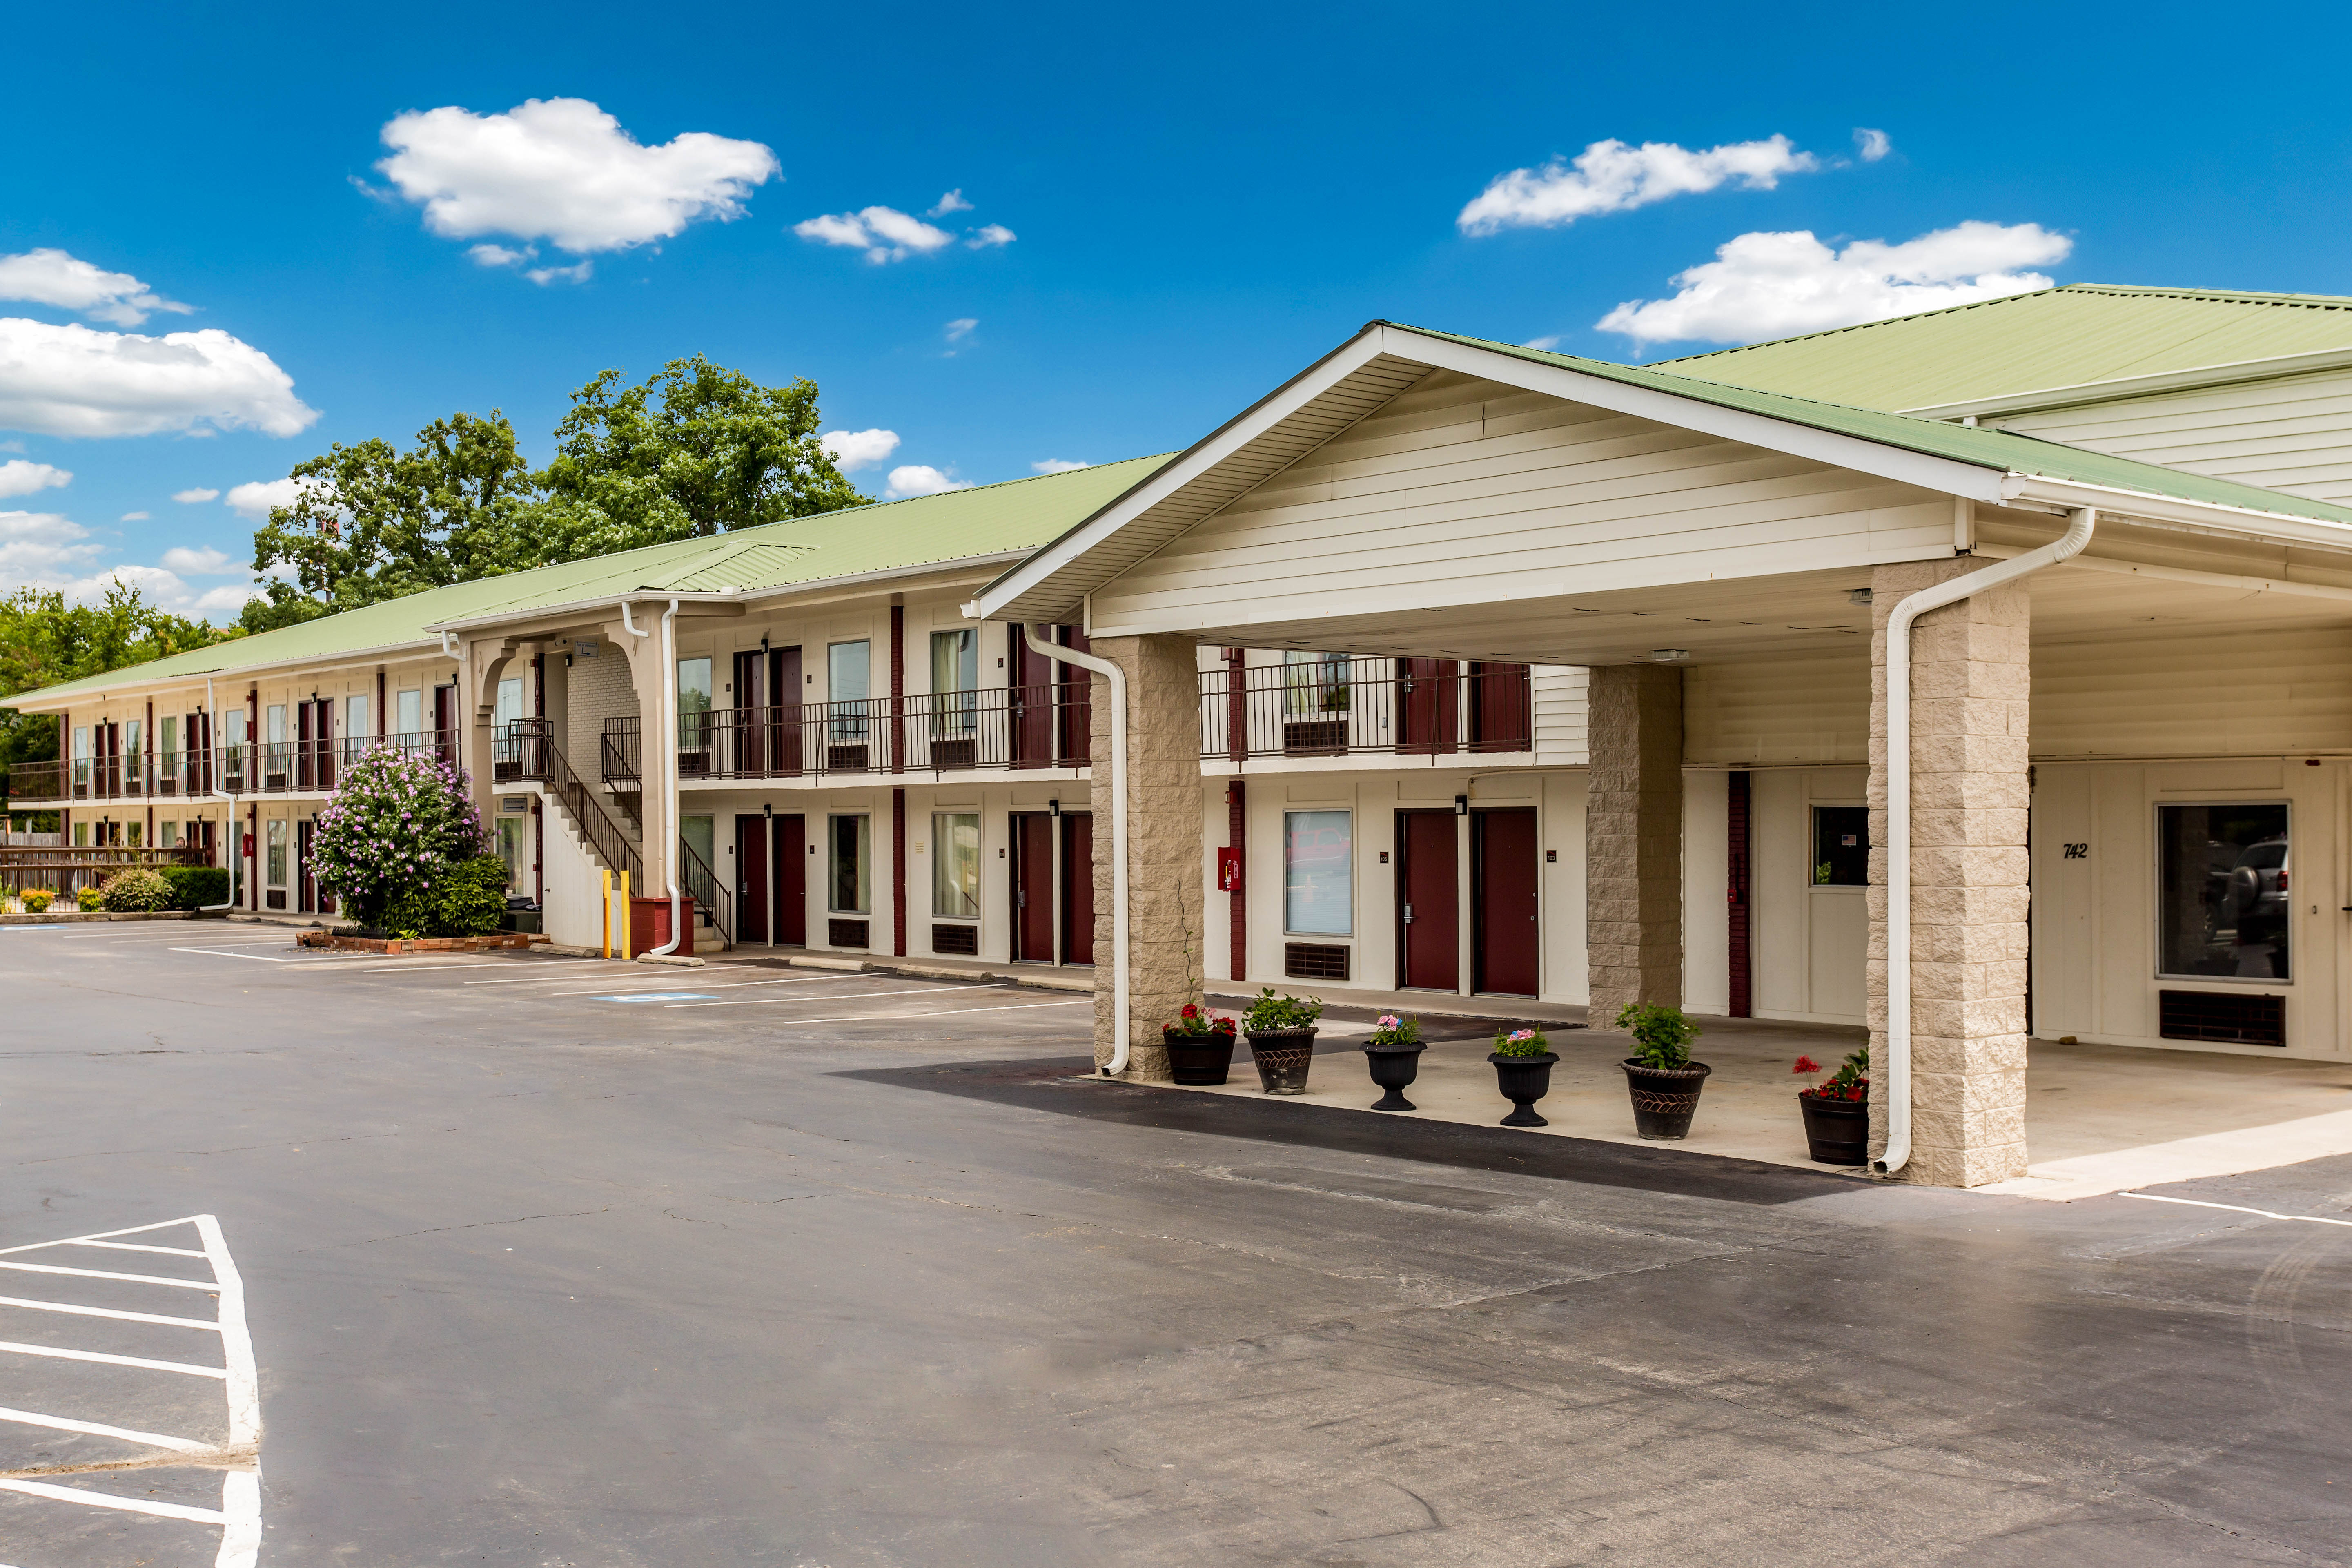 Image 5 | Red Roof Inn Monteagle